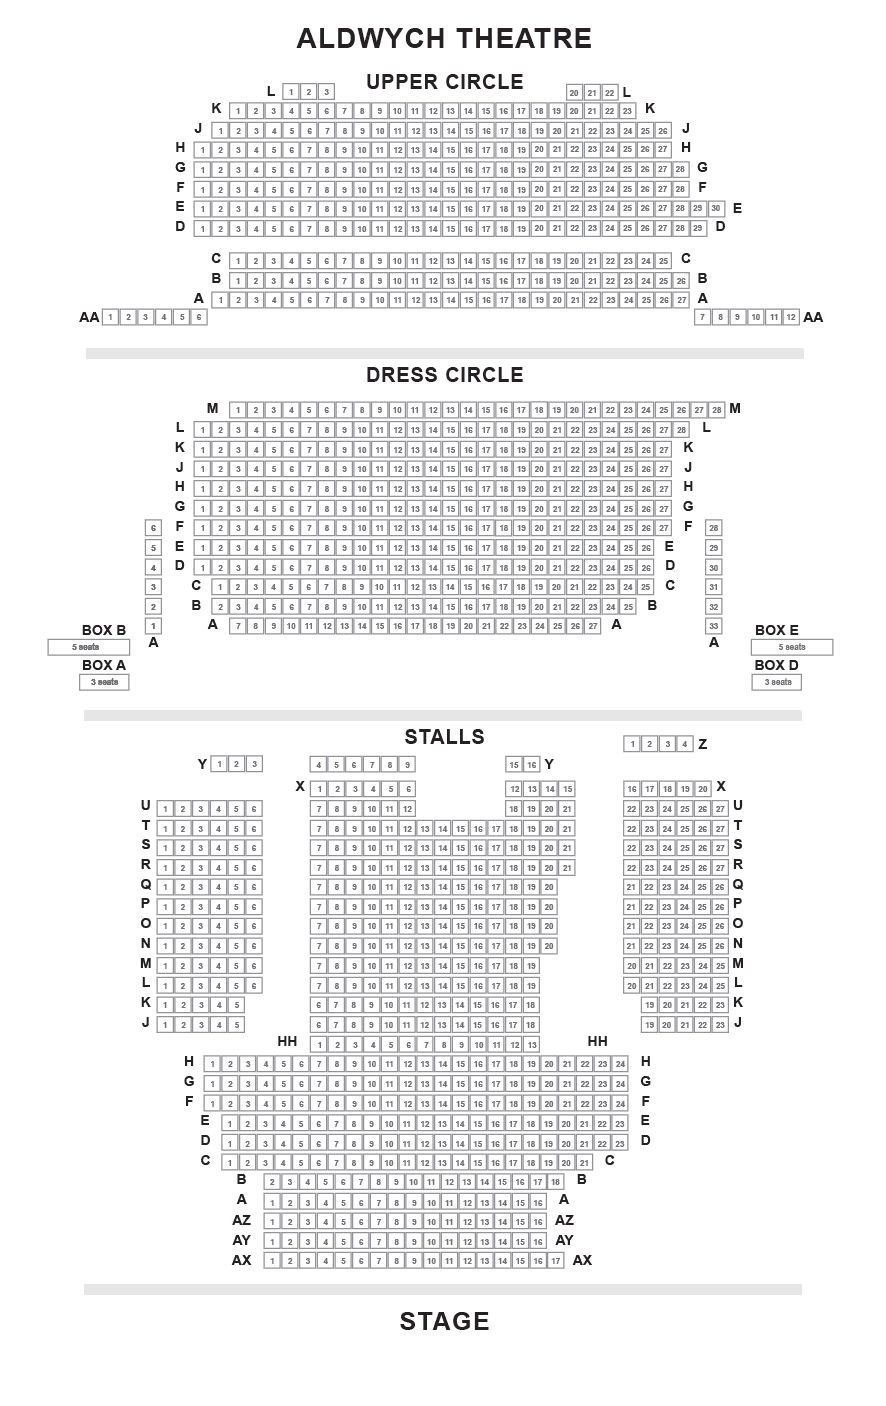 Aldwych Theatre Seating Plan